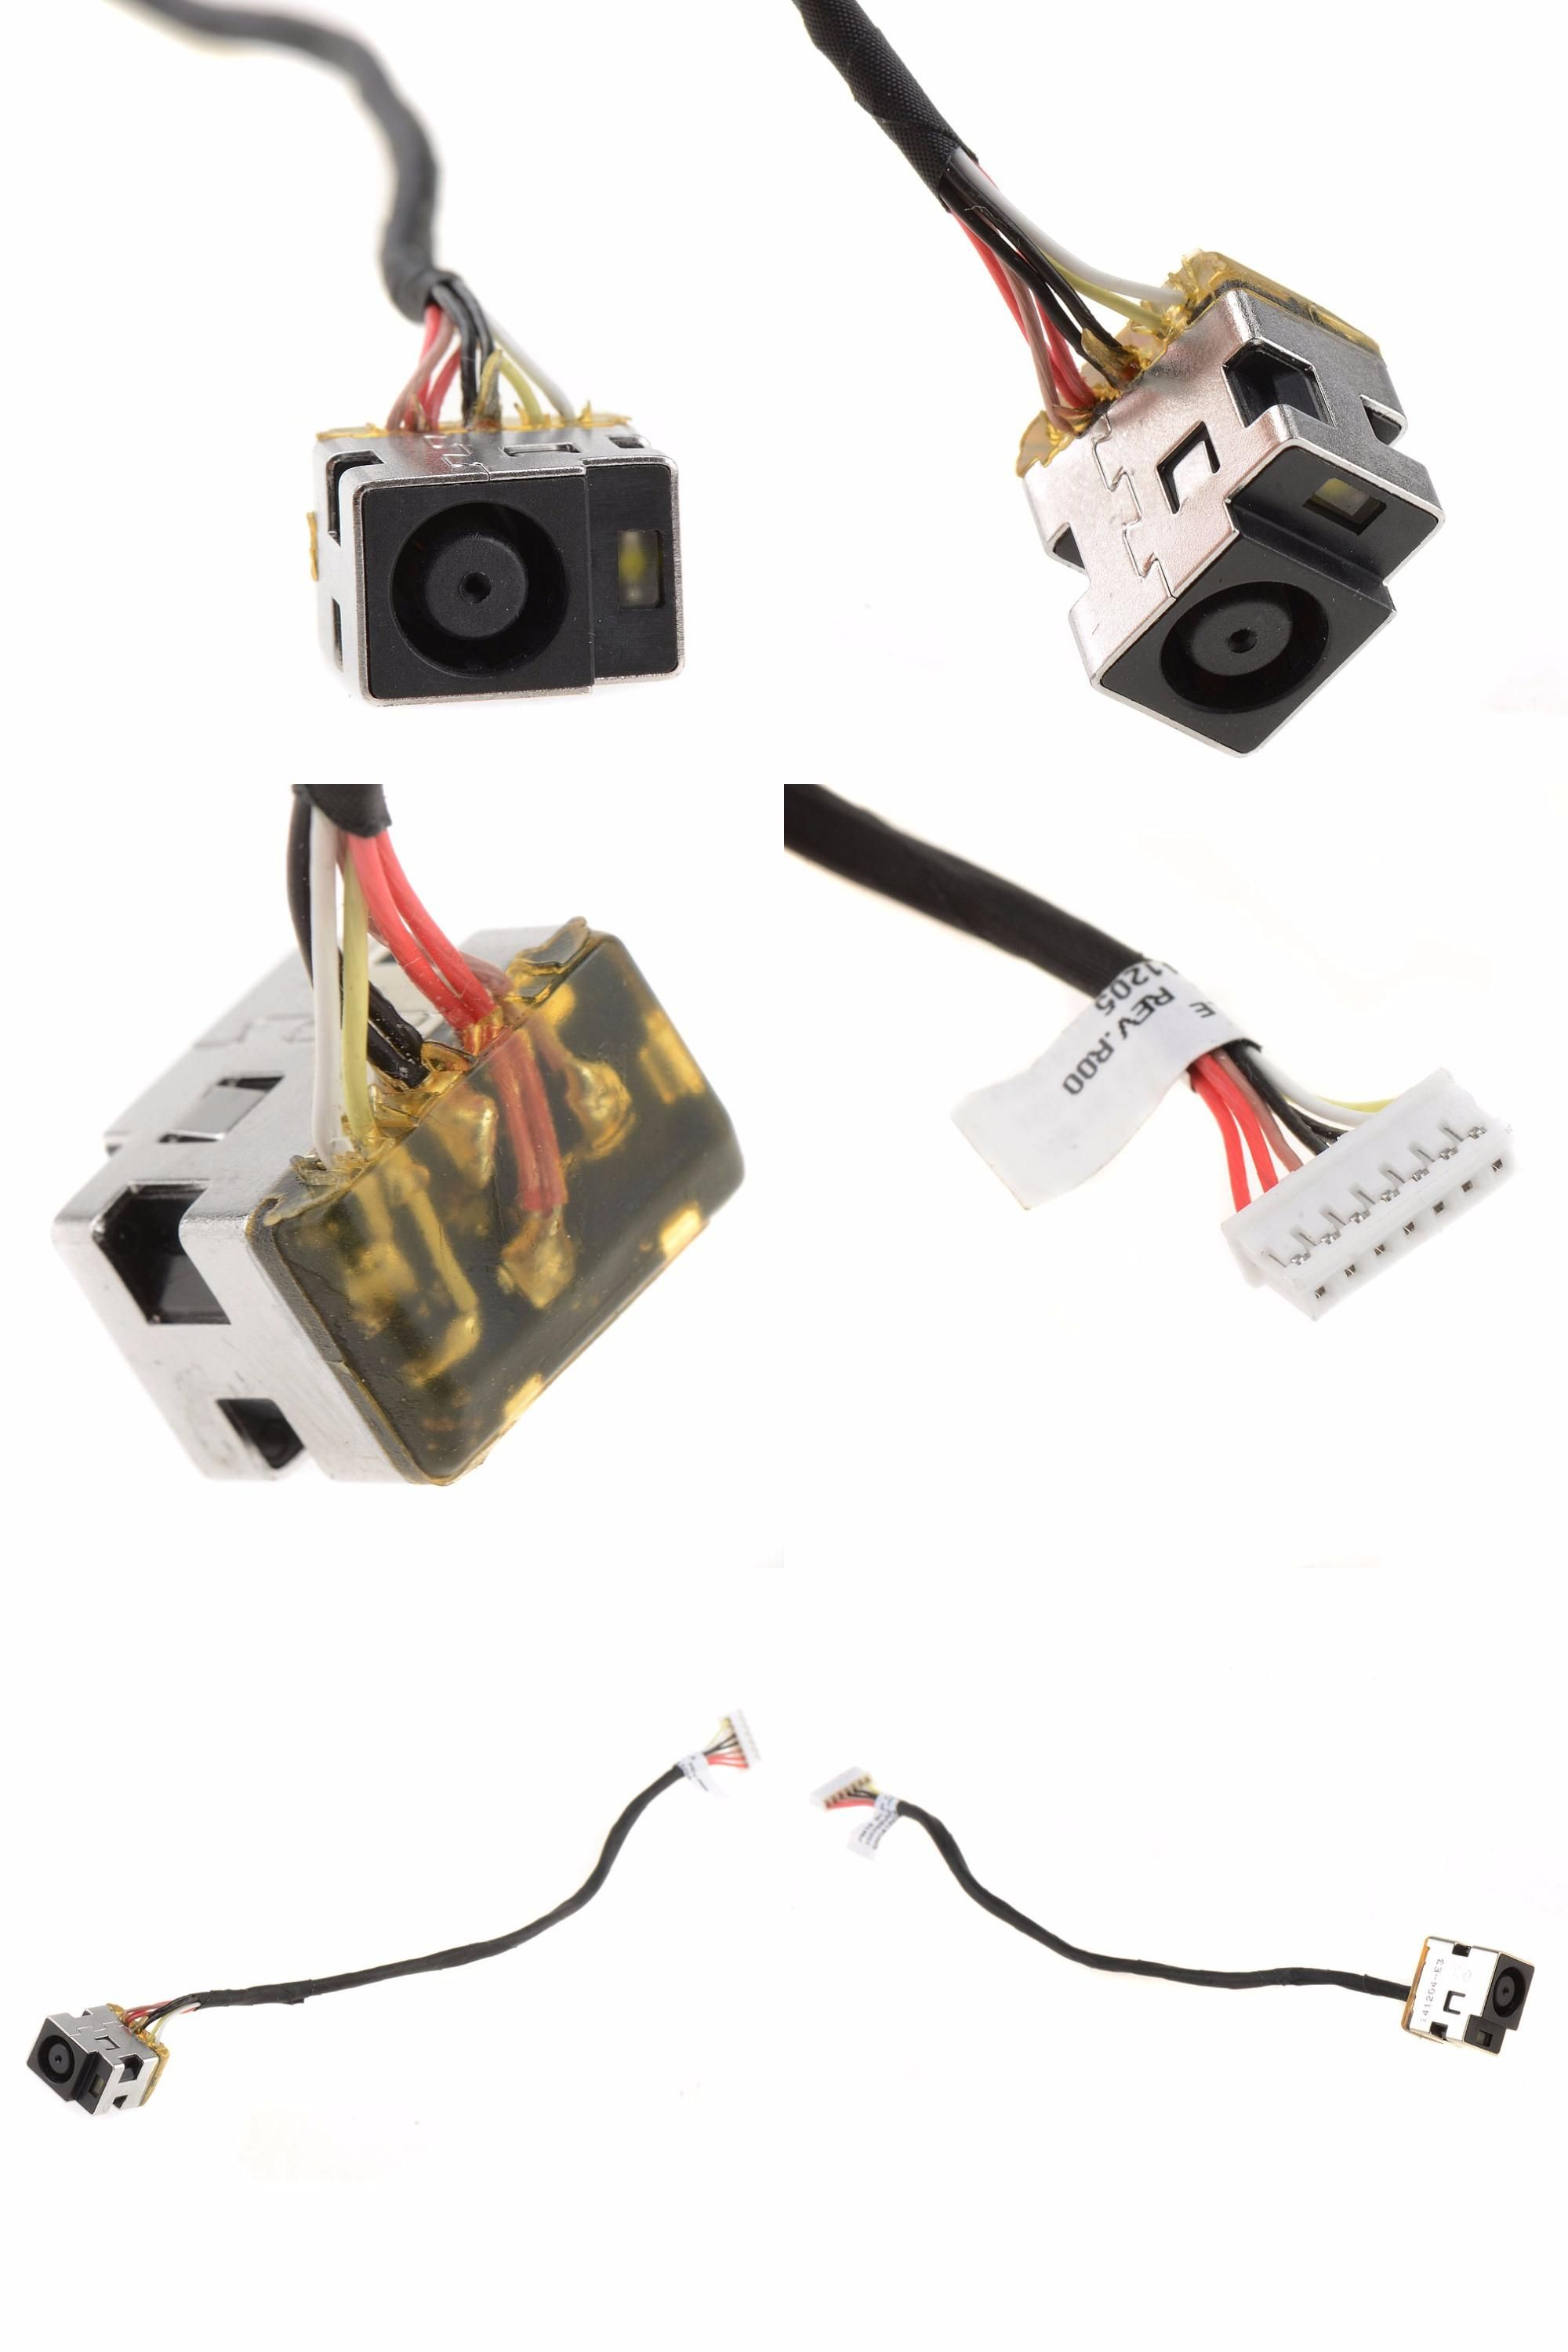 Visit To Buy Laptops Ac Dc In Power Jack Socket Cable Harness Fit For Hp Compaq G56 G62 Cq56 Cq62 Cq62z Notebook Compu Buying Laptop Notebook Computer Compaq